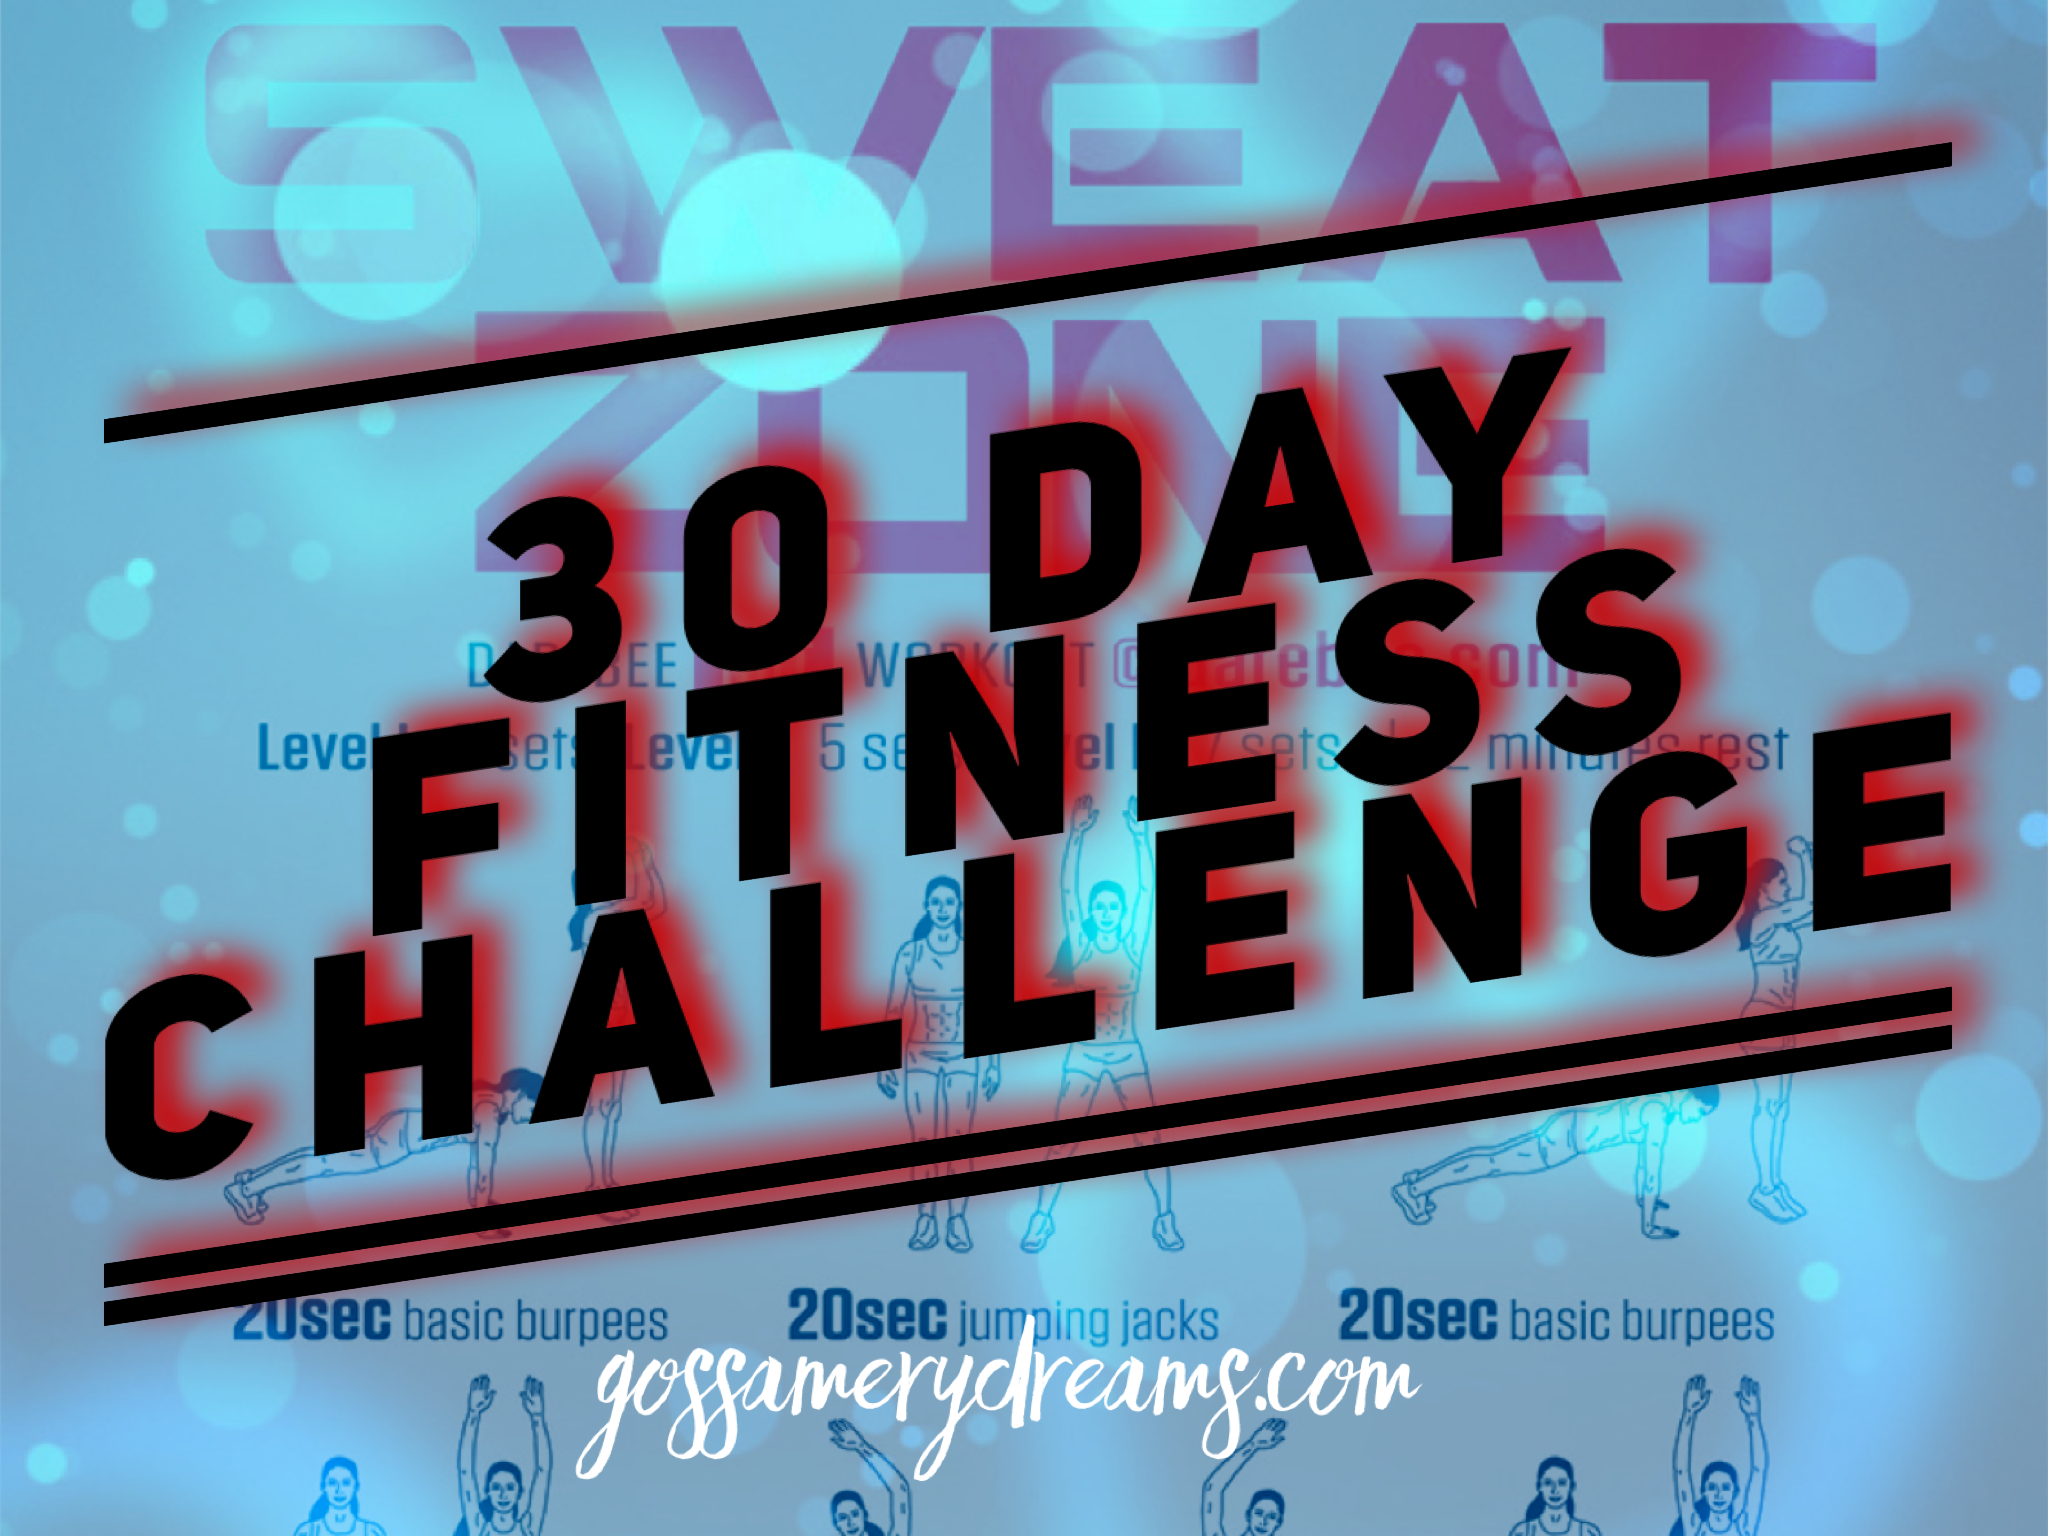 30 DAY HIIT & MINI BAND CHALLENGE! JOIN US!